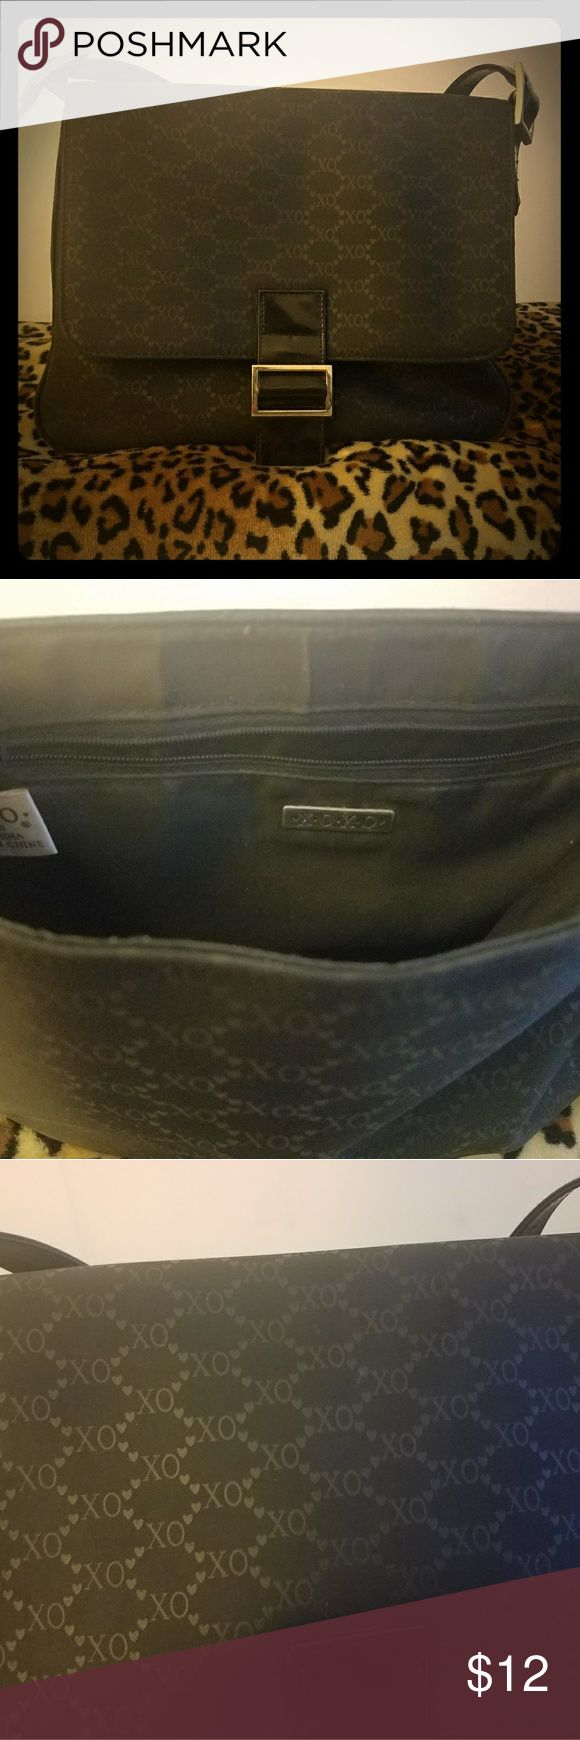 XOXO black handbag This handbag is gently used. You can see the usage on tbe silver buckles. It can be used for work, to go shopping, or to go out for fun. XOXO Bags